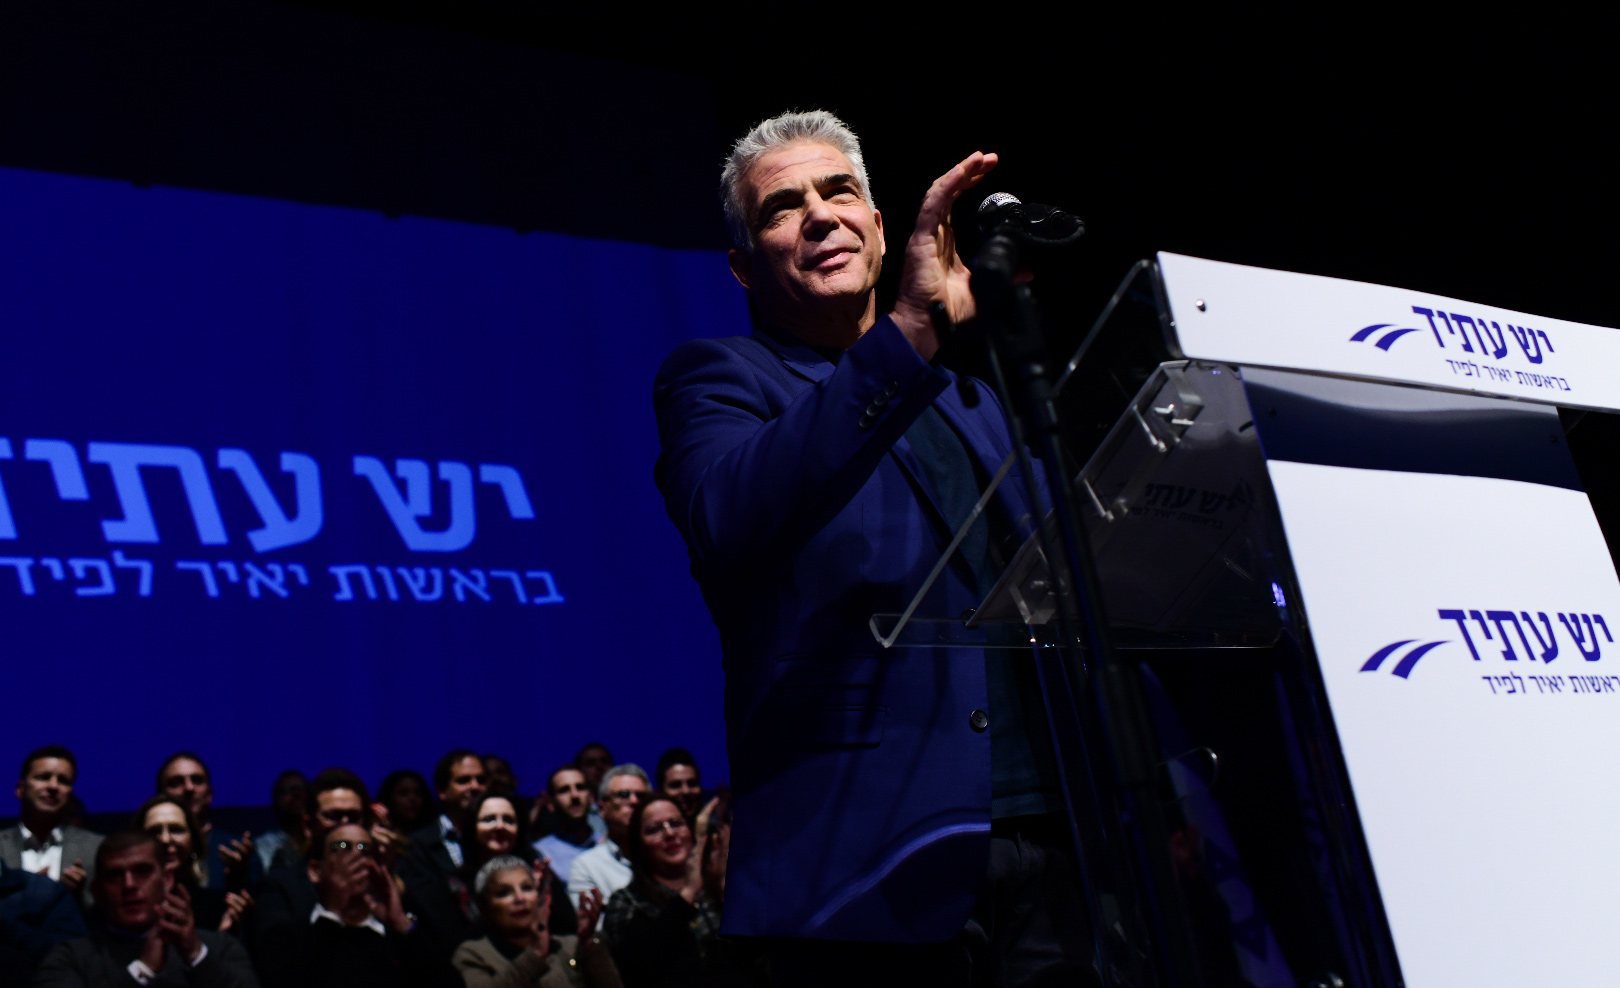 Yair Lapid, leader of the party Yesh Atid, on January 8, 2019. Tomer Neuberg/Flash90.